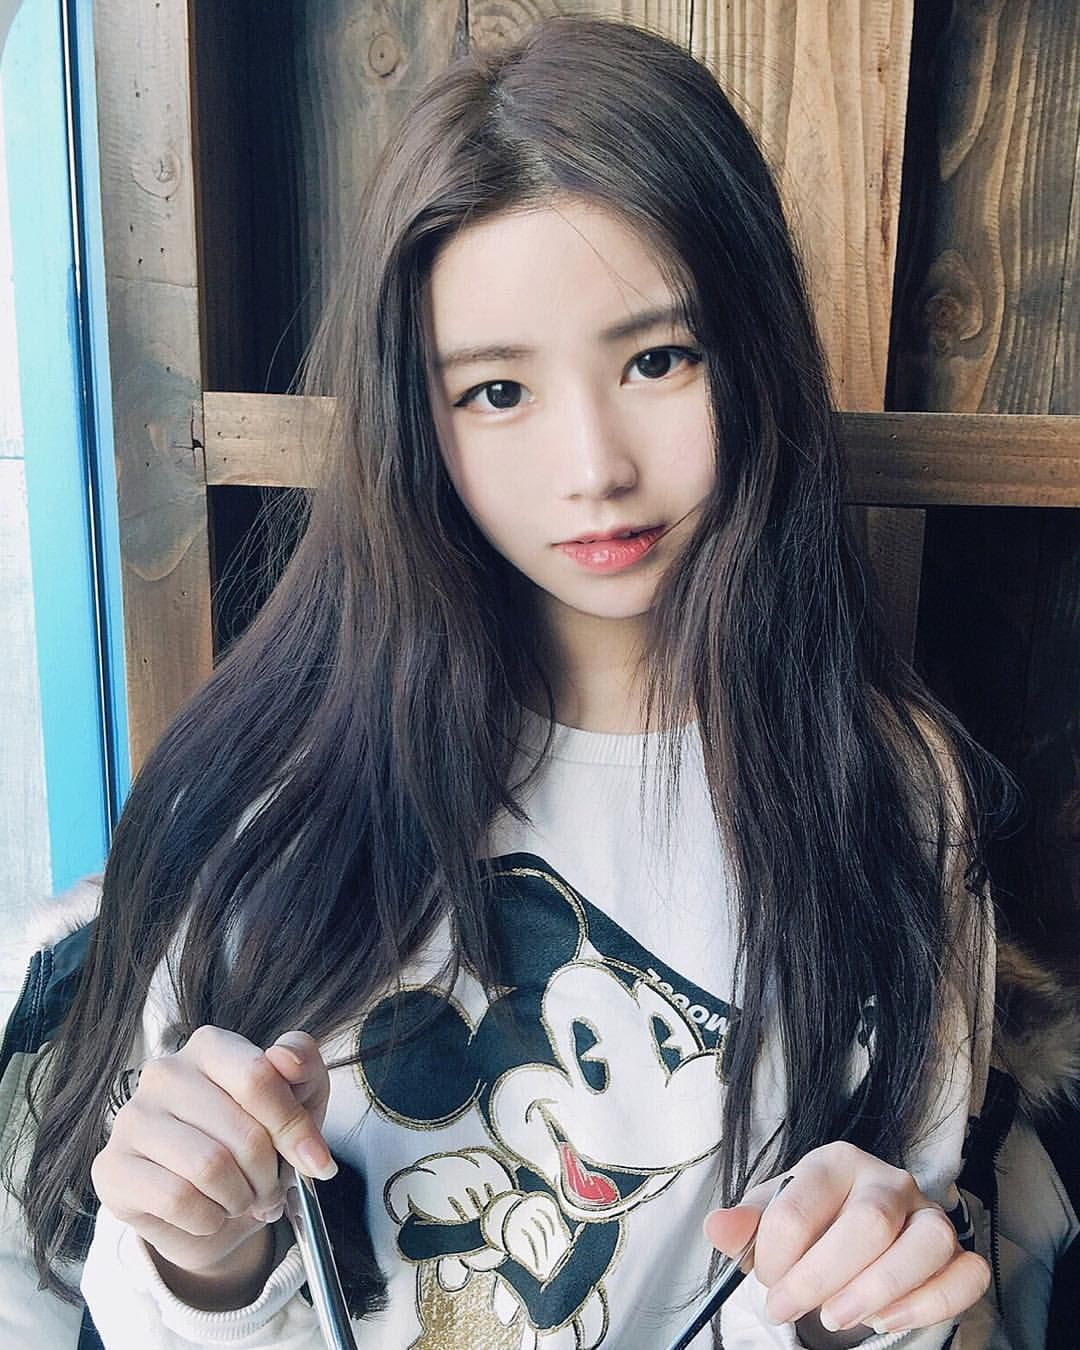 힝 사진폭탄 미앙 ️ Korean beauty in 2019 Ulzzang, Cute korean